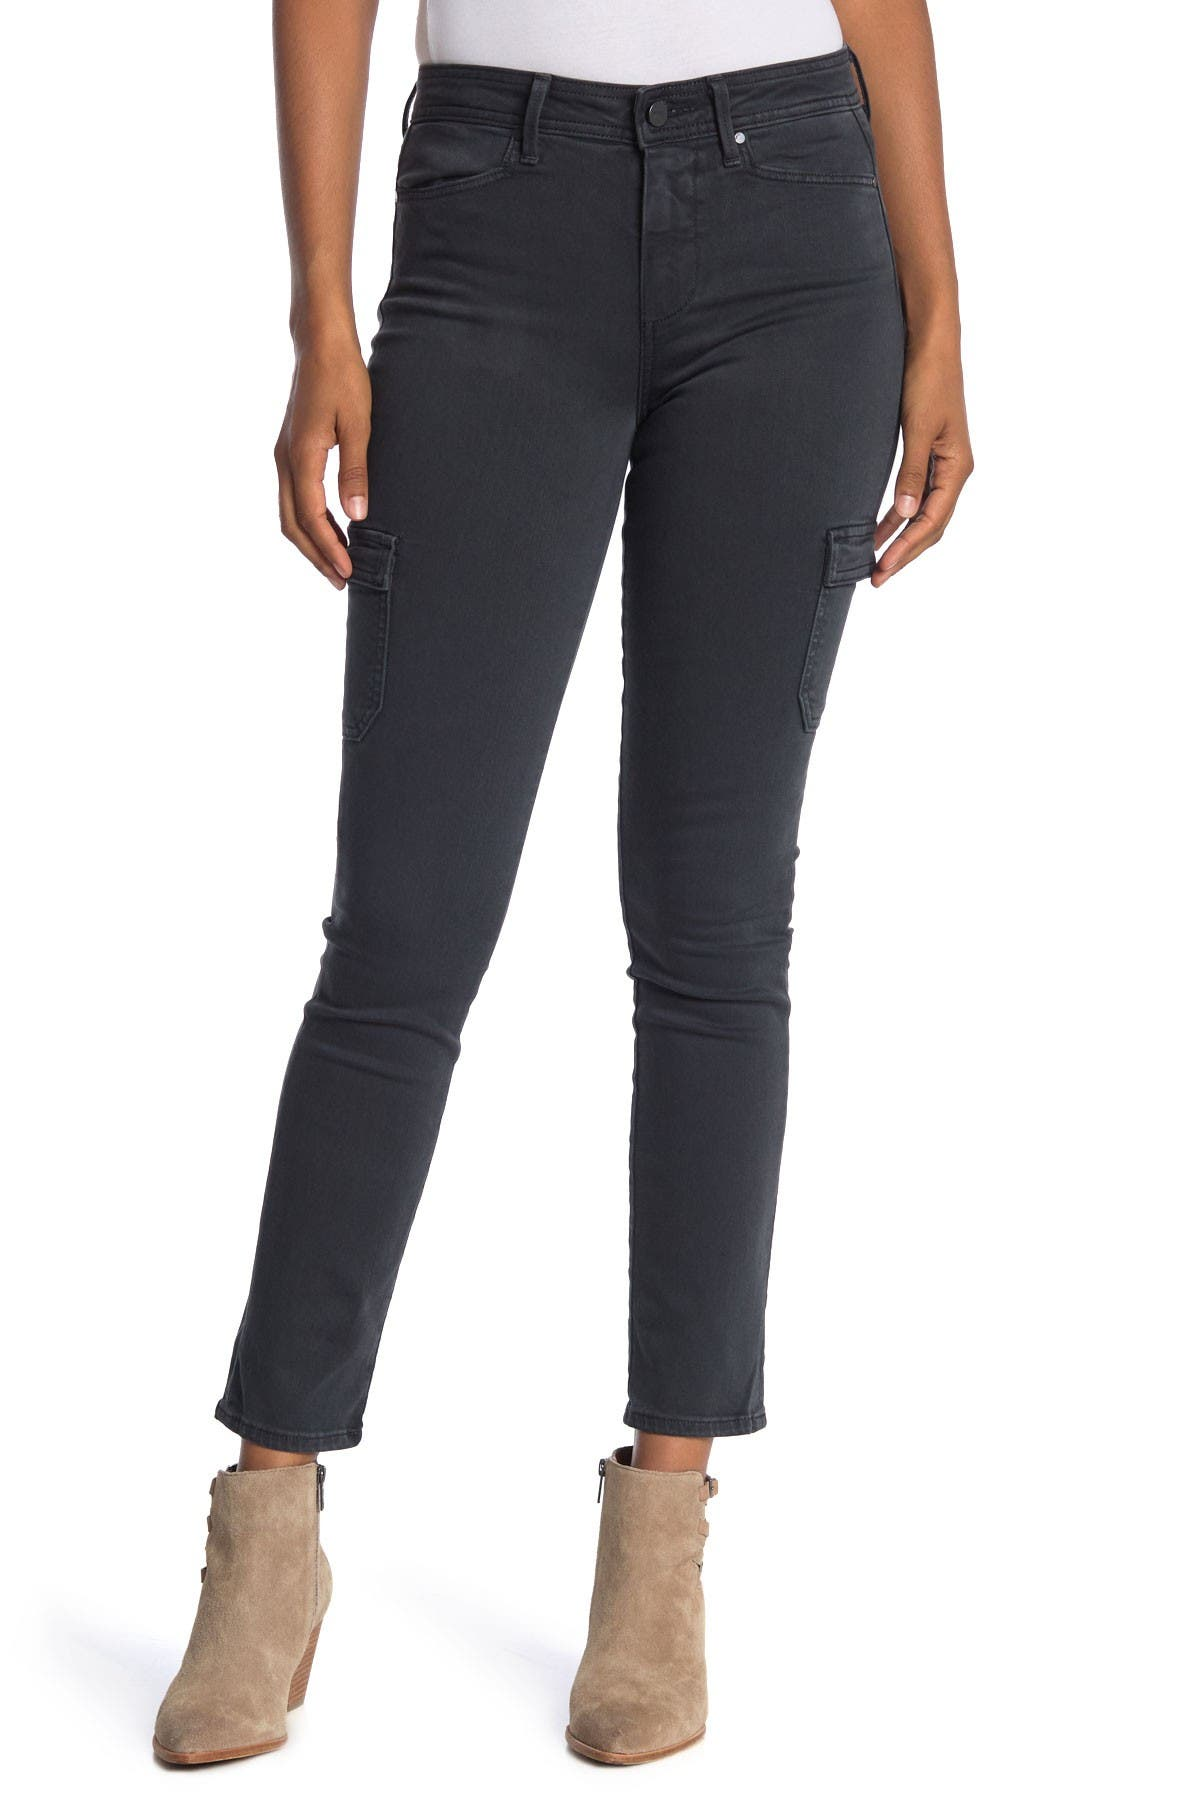 Image of PAIGE Hoxton Skinny Cargo Jeans